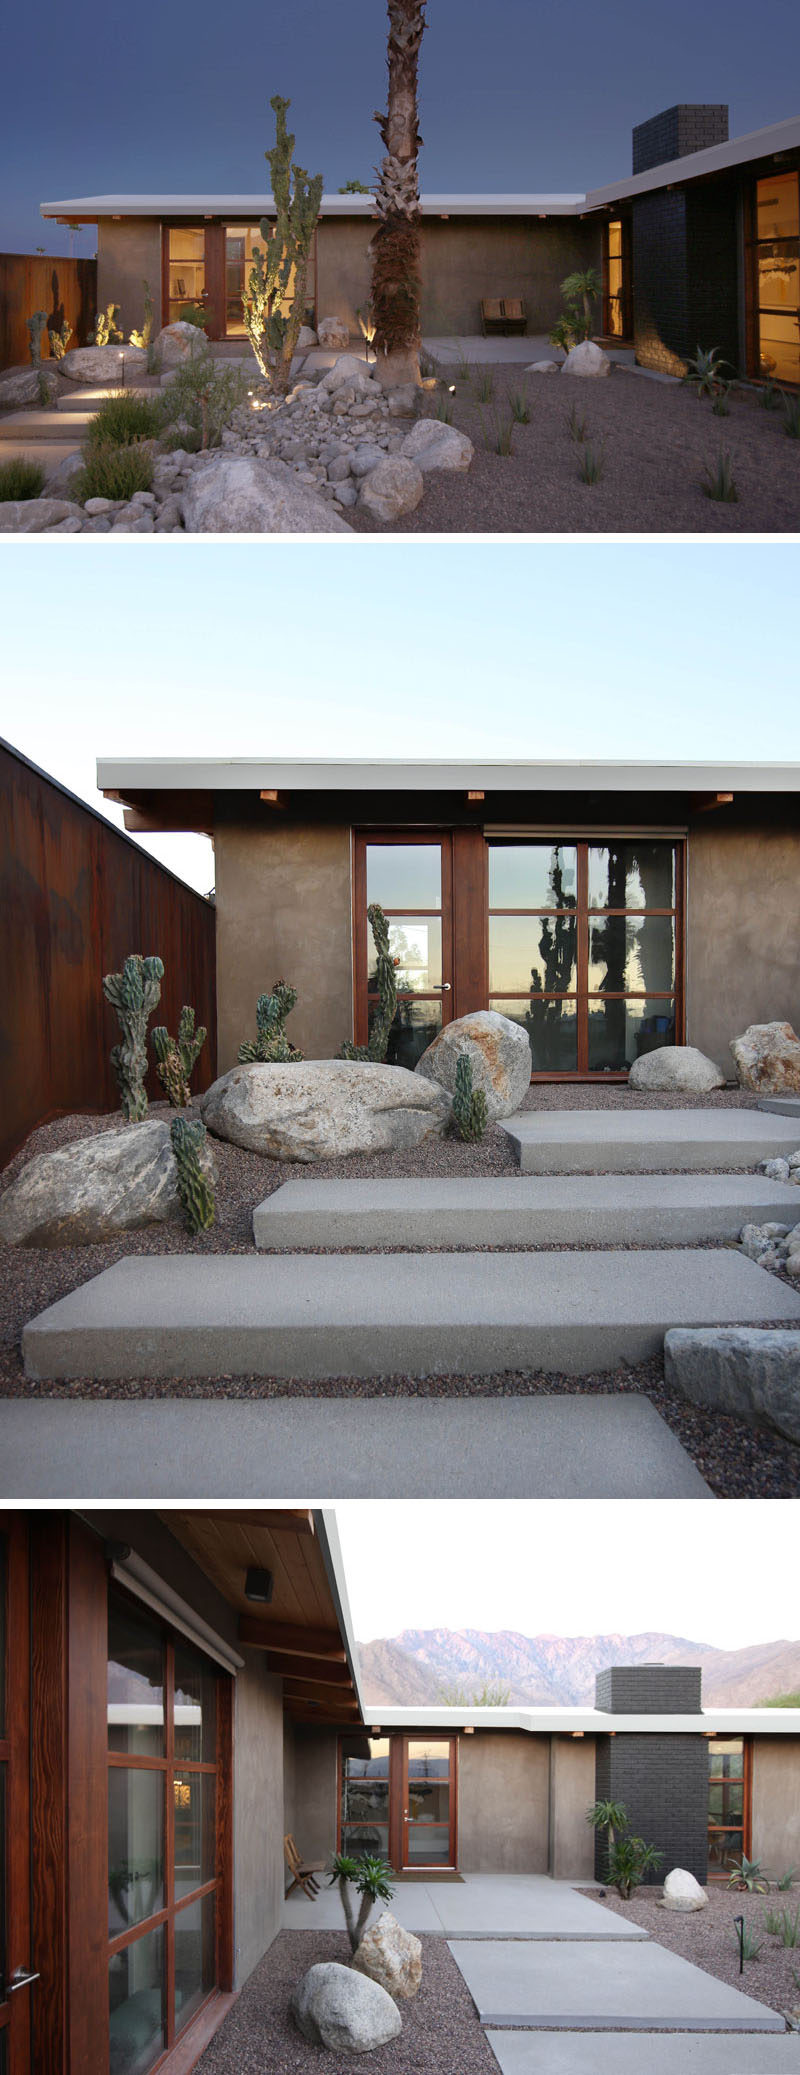 This Renovated MidCentury Modern Ranch House Is